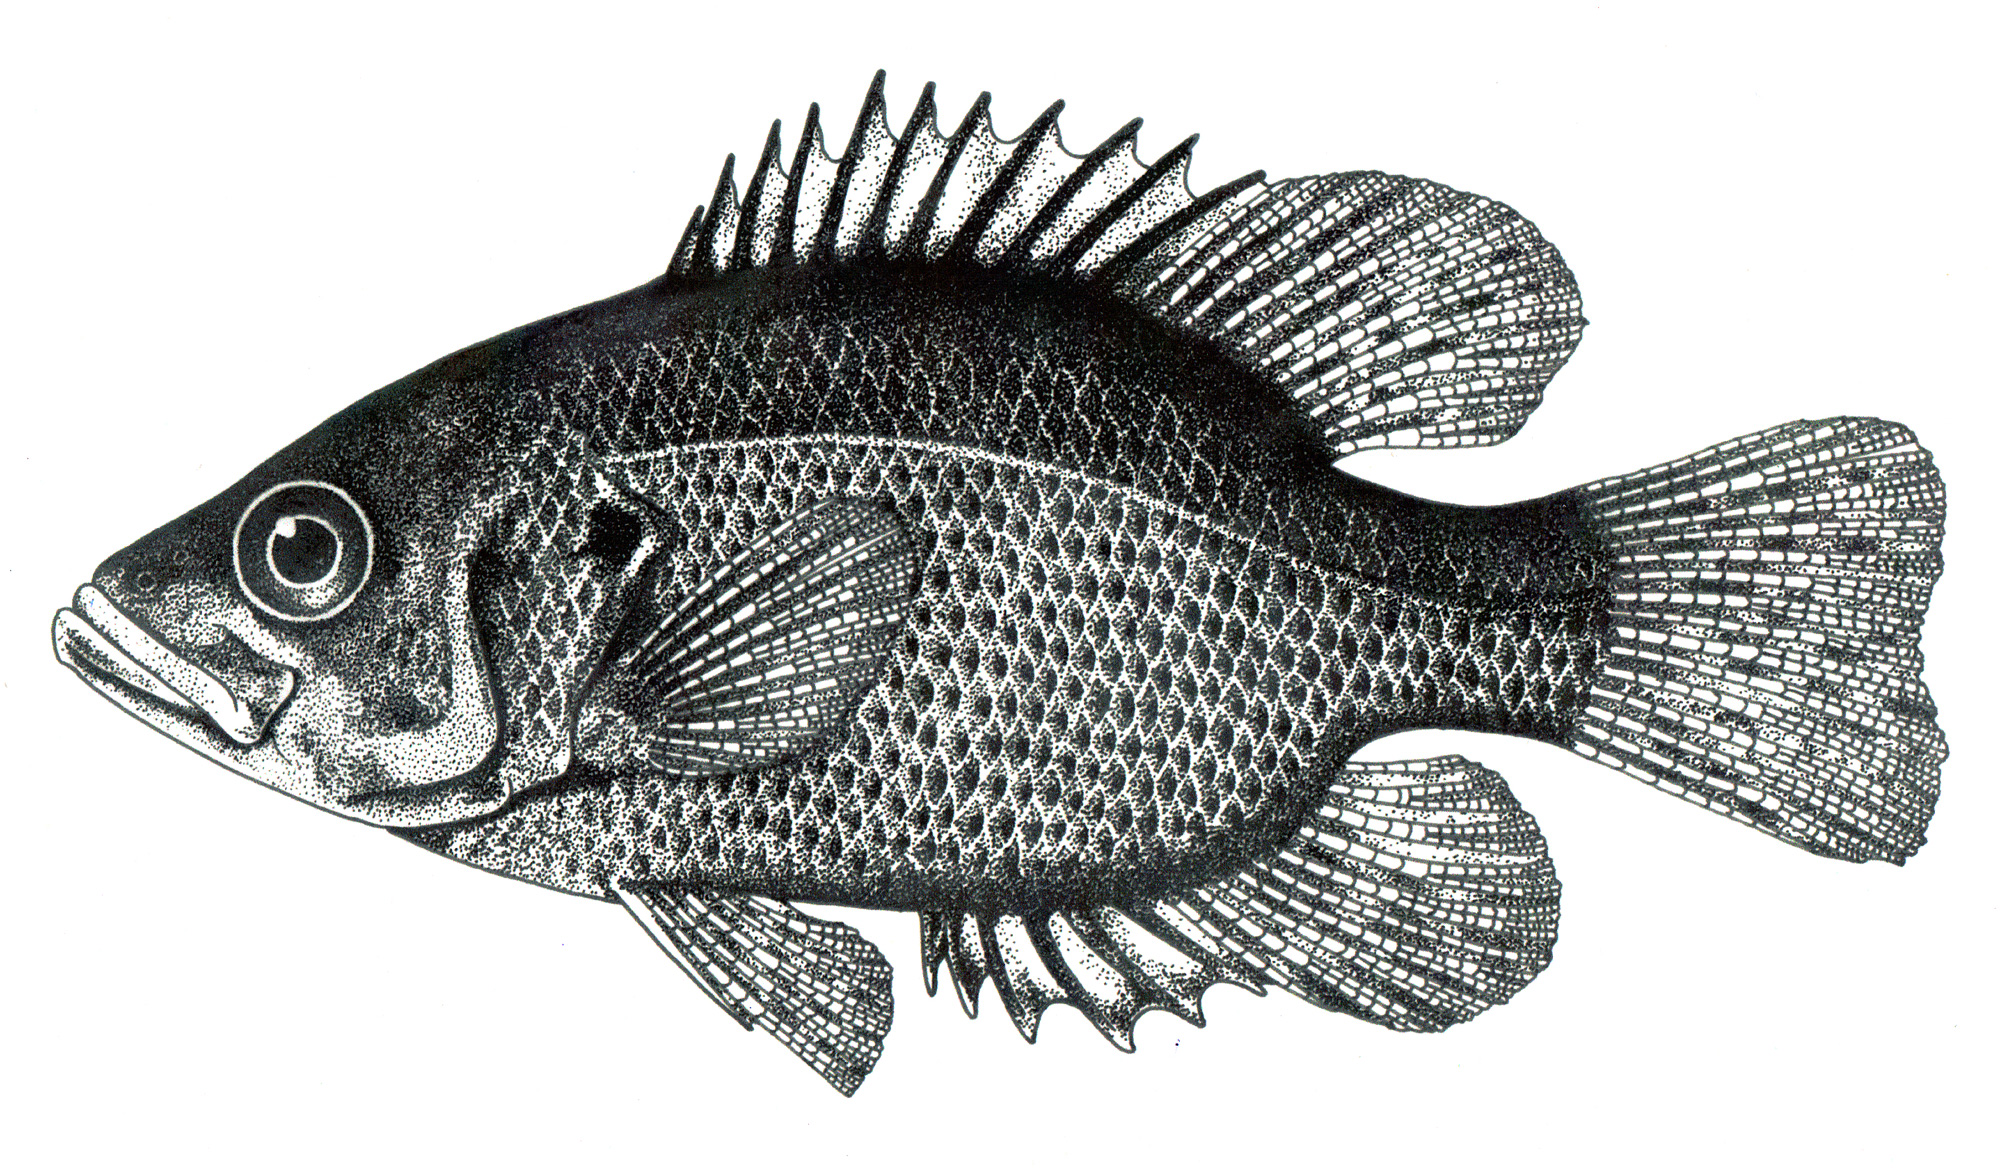 Rock bass pen and ink stipple illustration